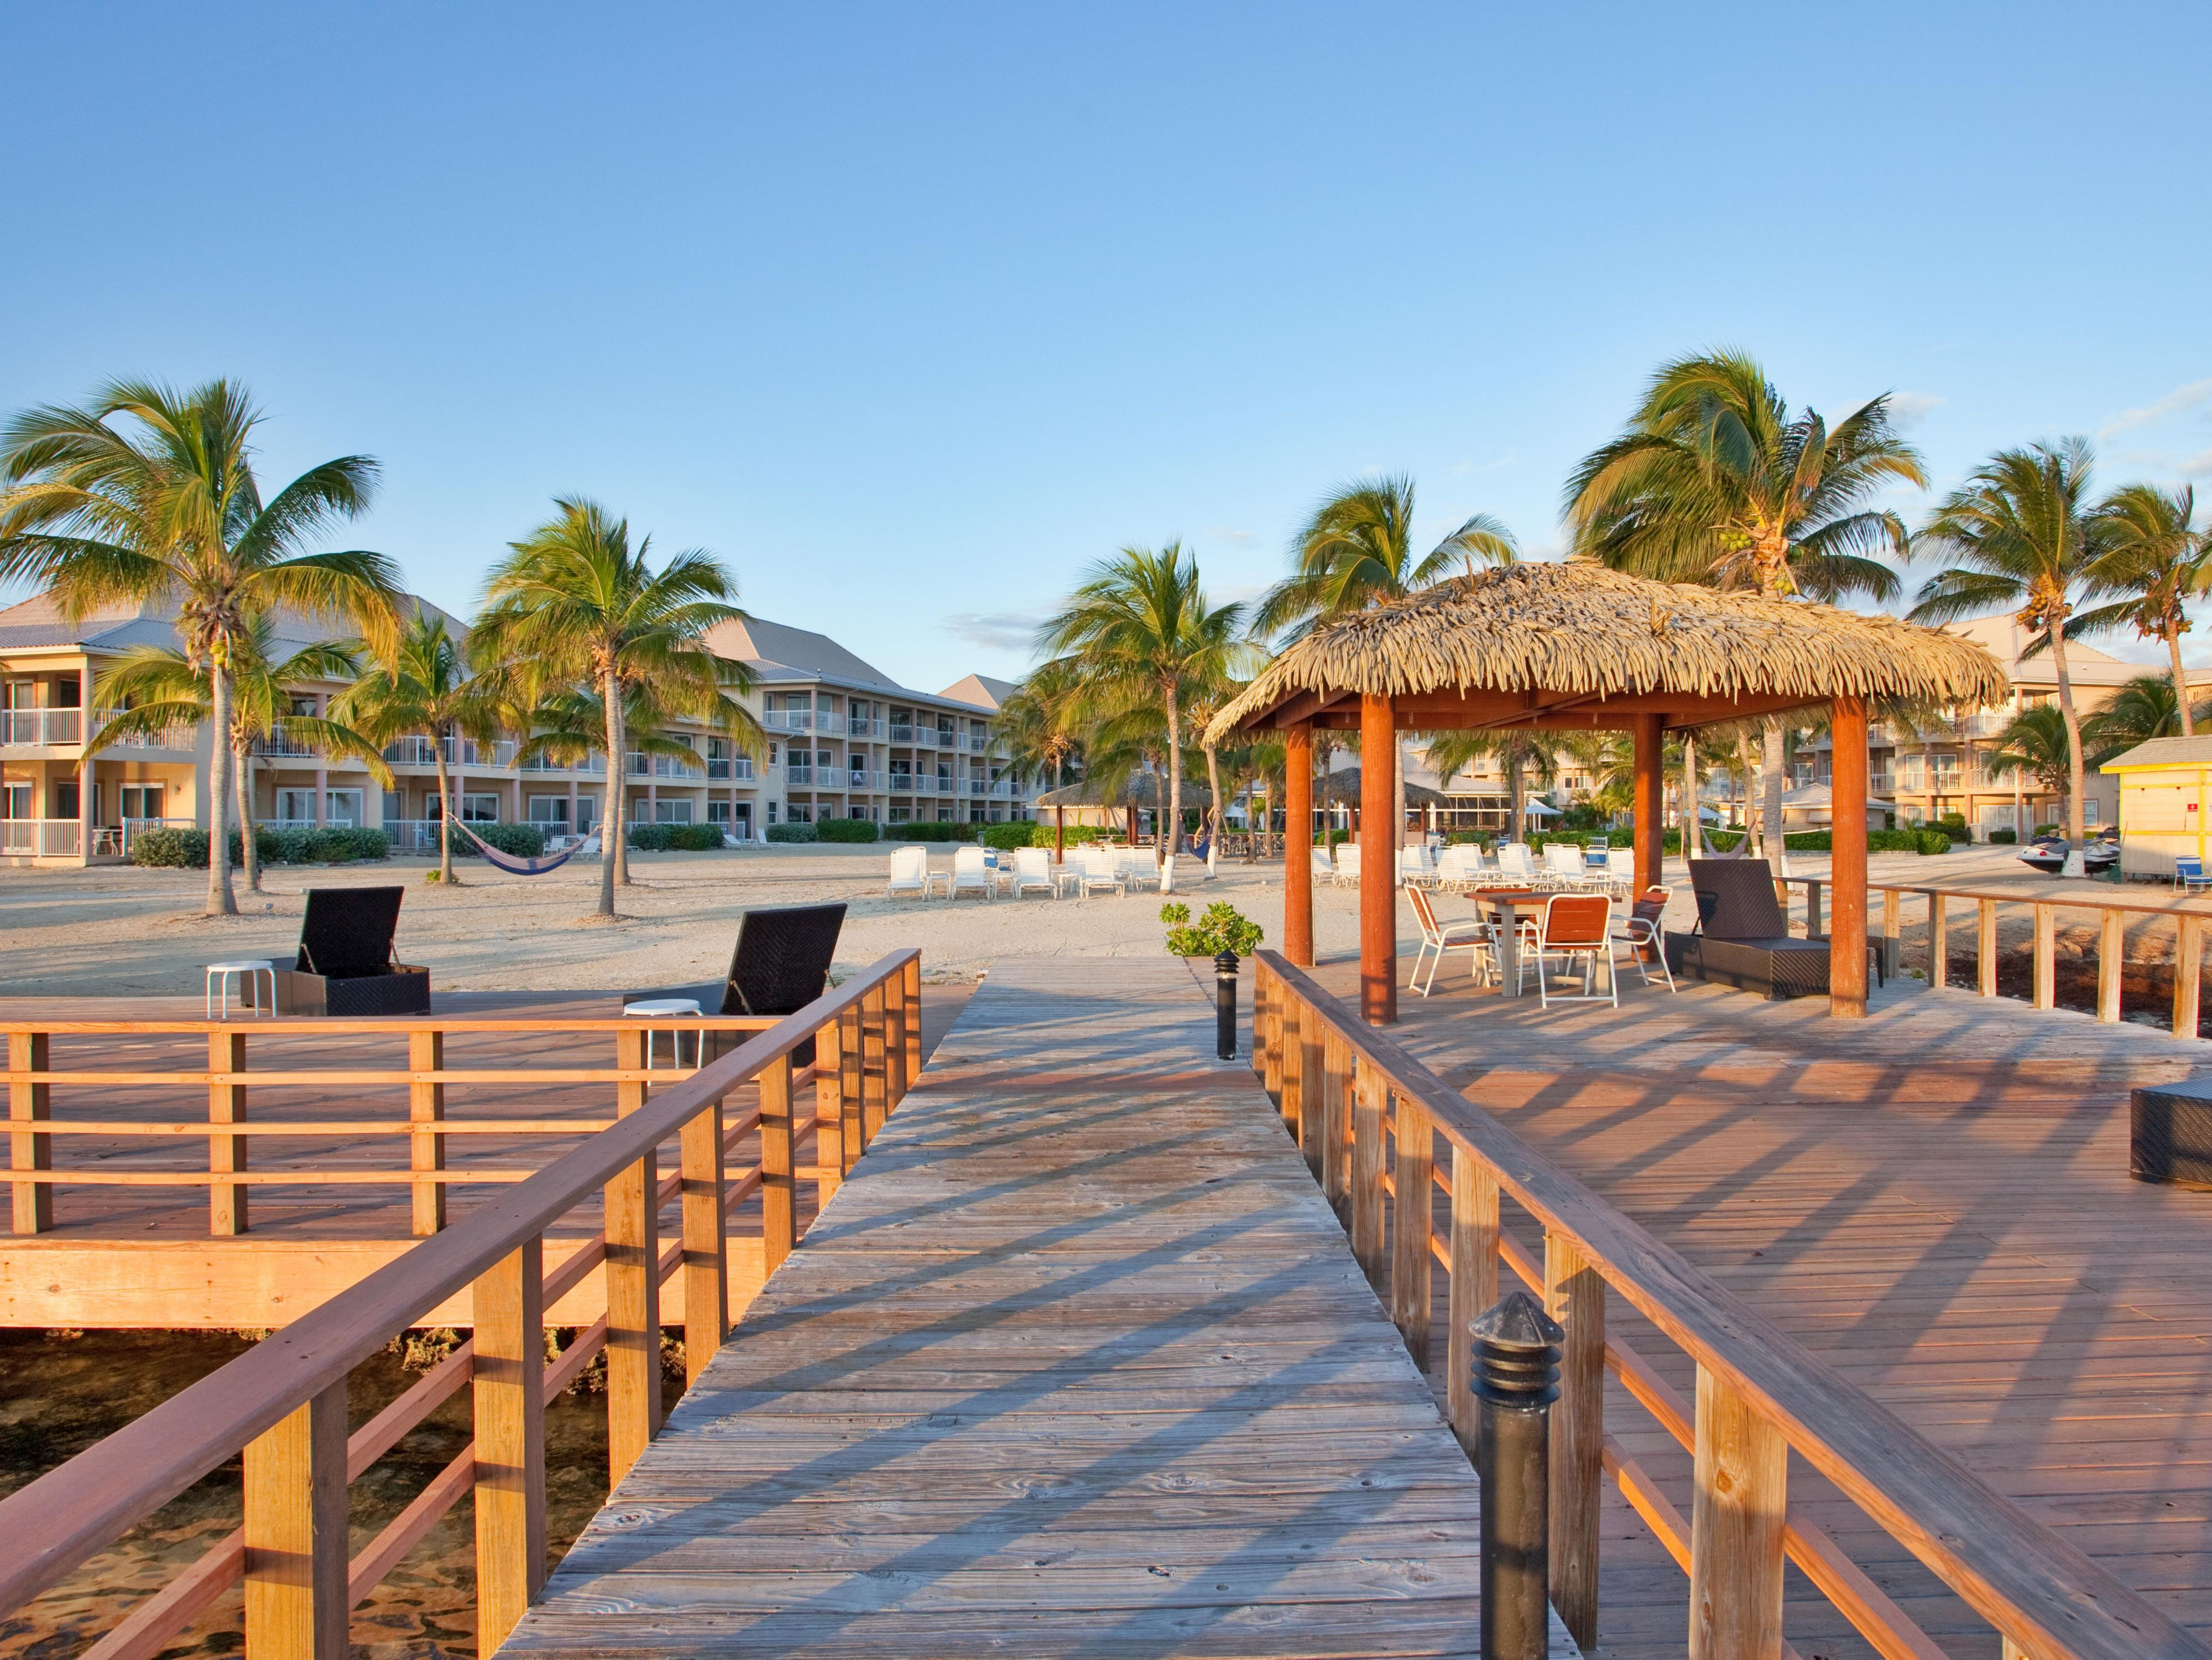 240 foot pier for fishing or relaxing, Holiday Inn Grand Cayman